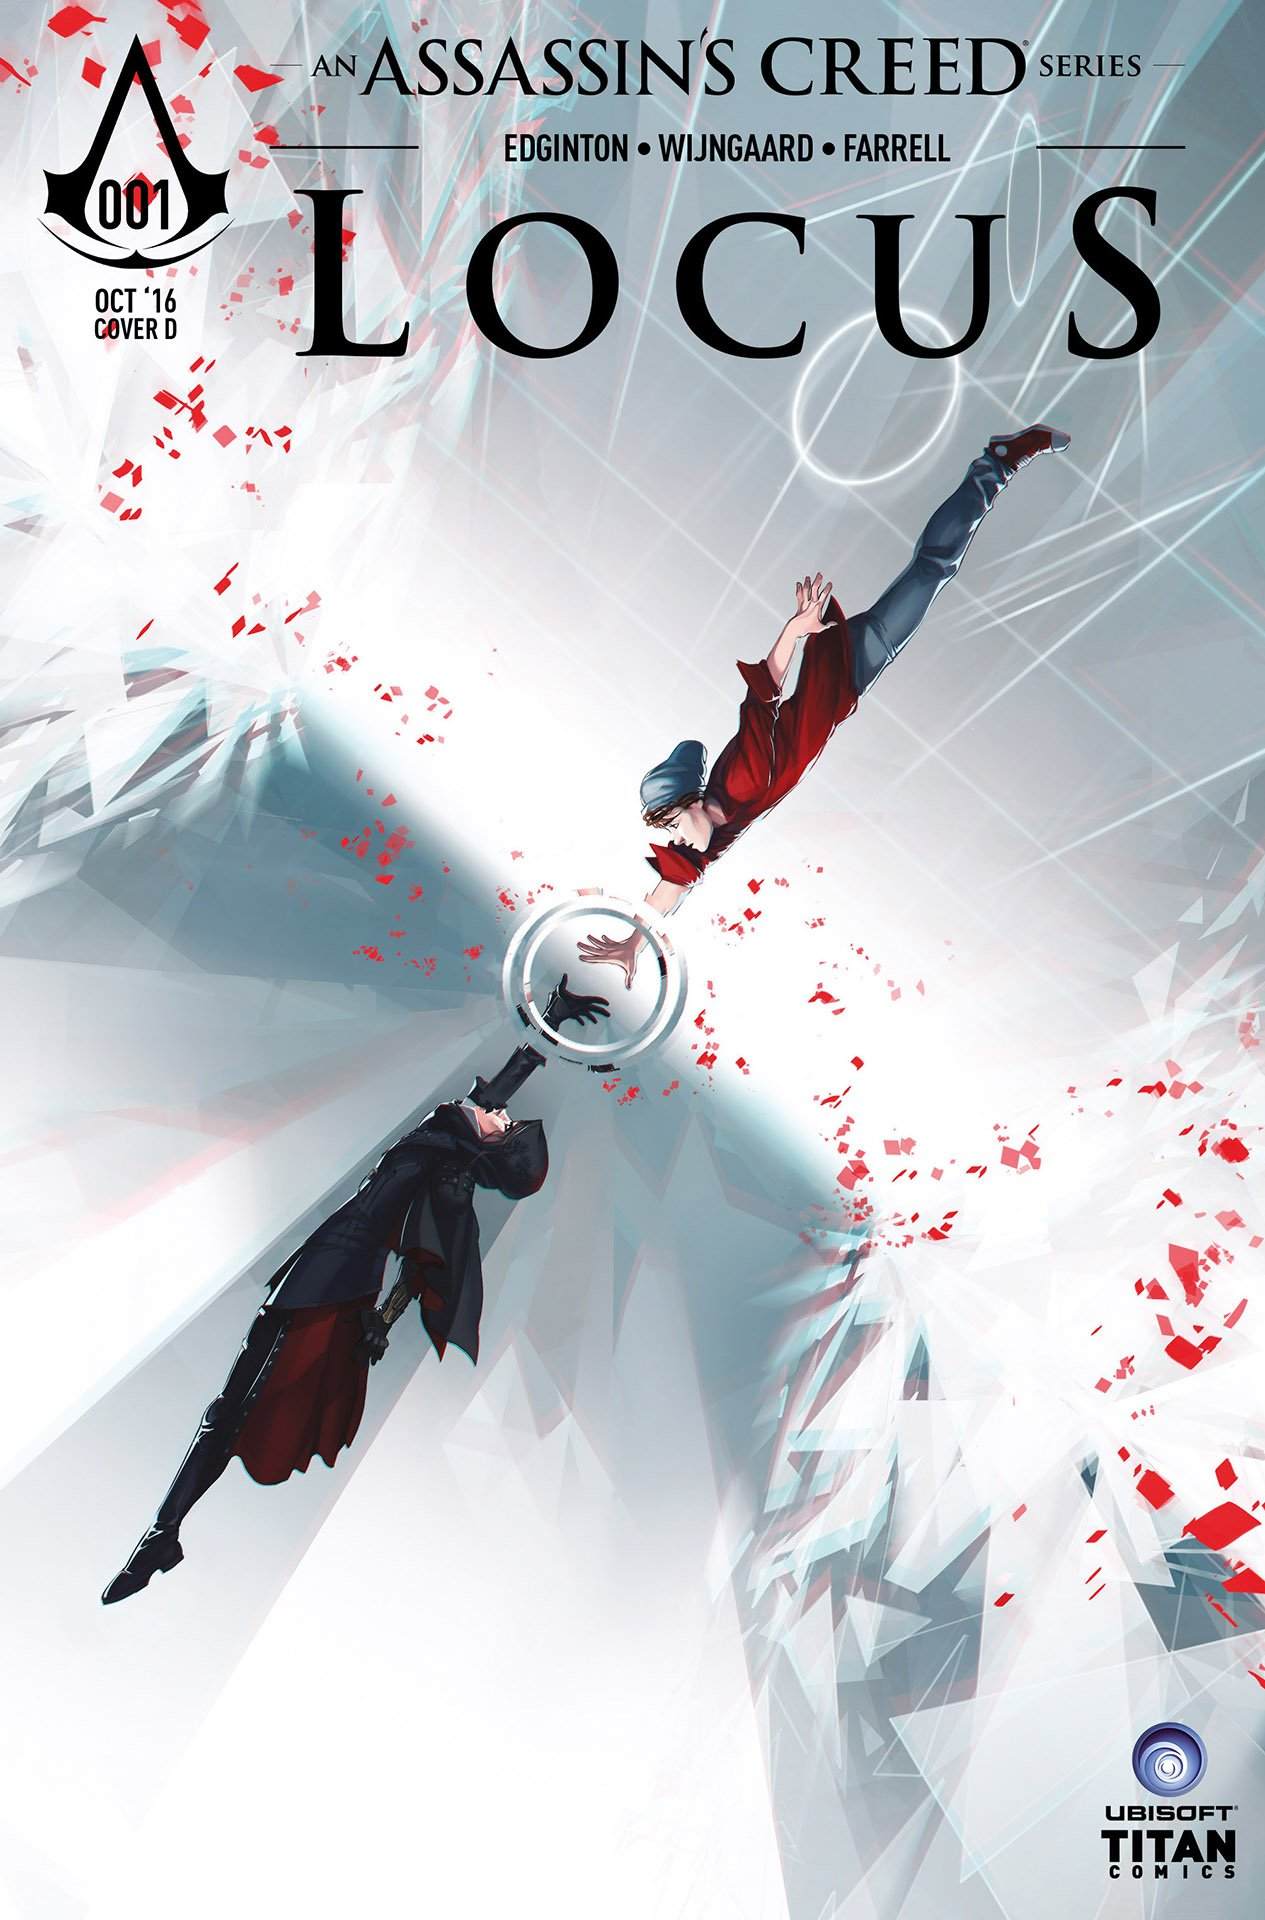 Assassin's Creed: Locus 01 (cover d) (October 2016)